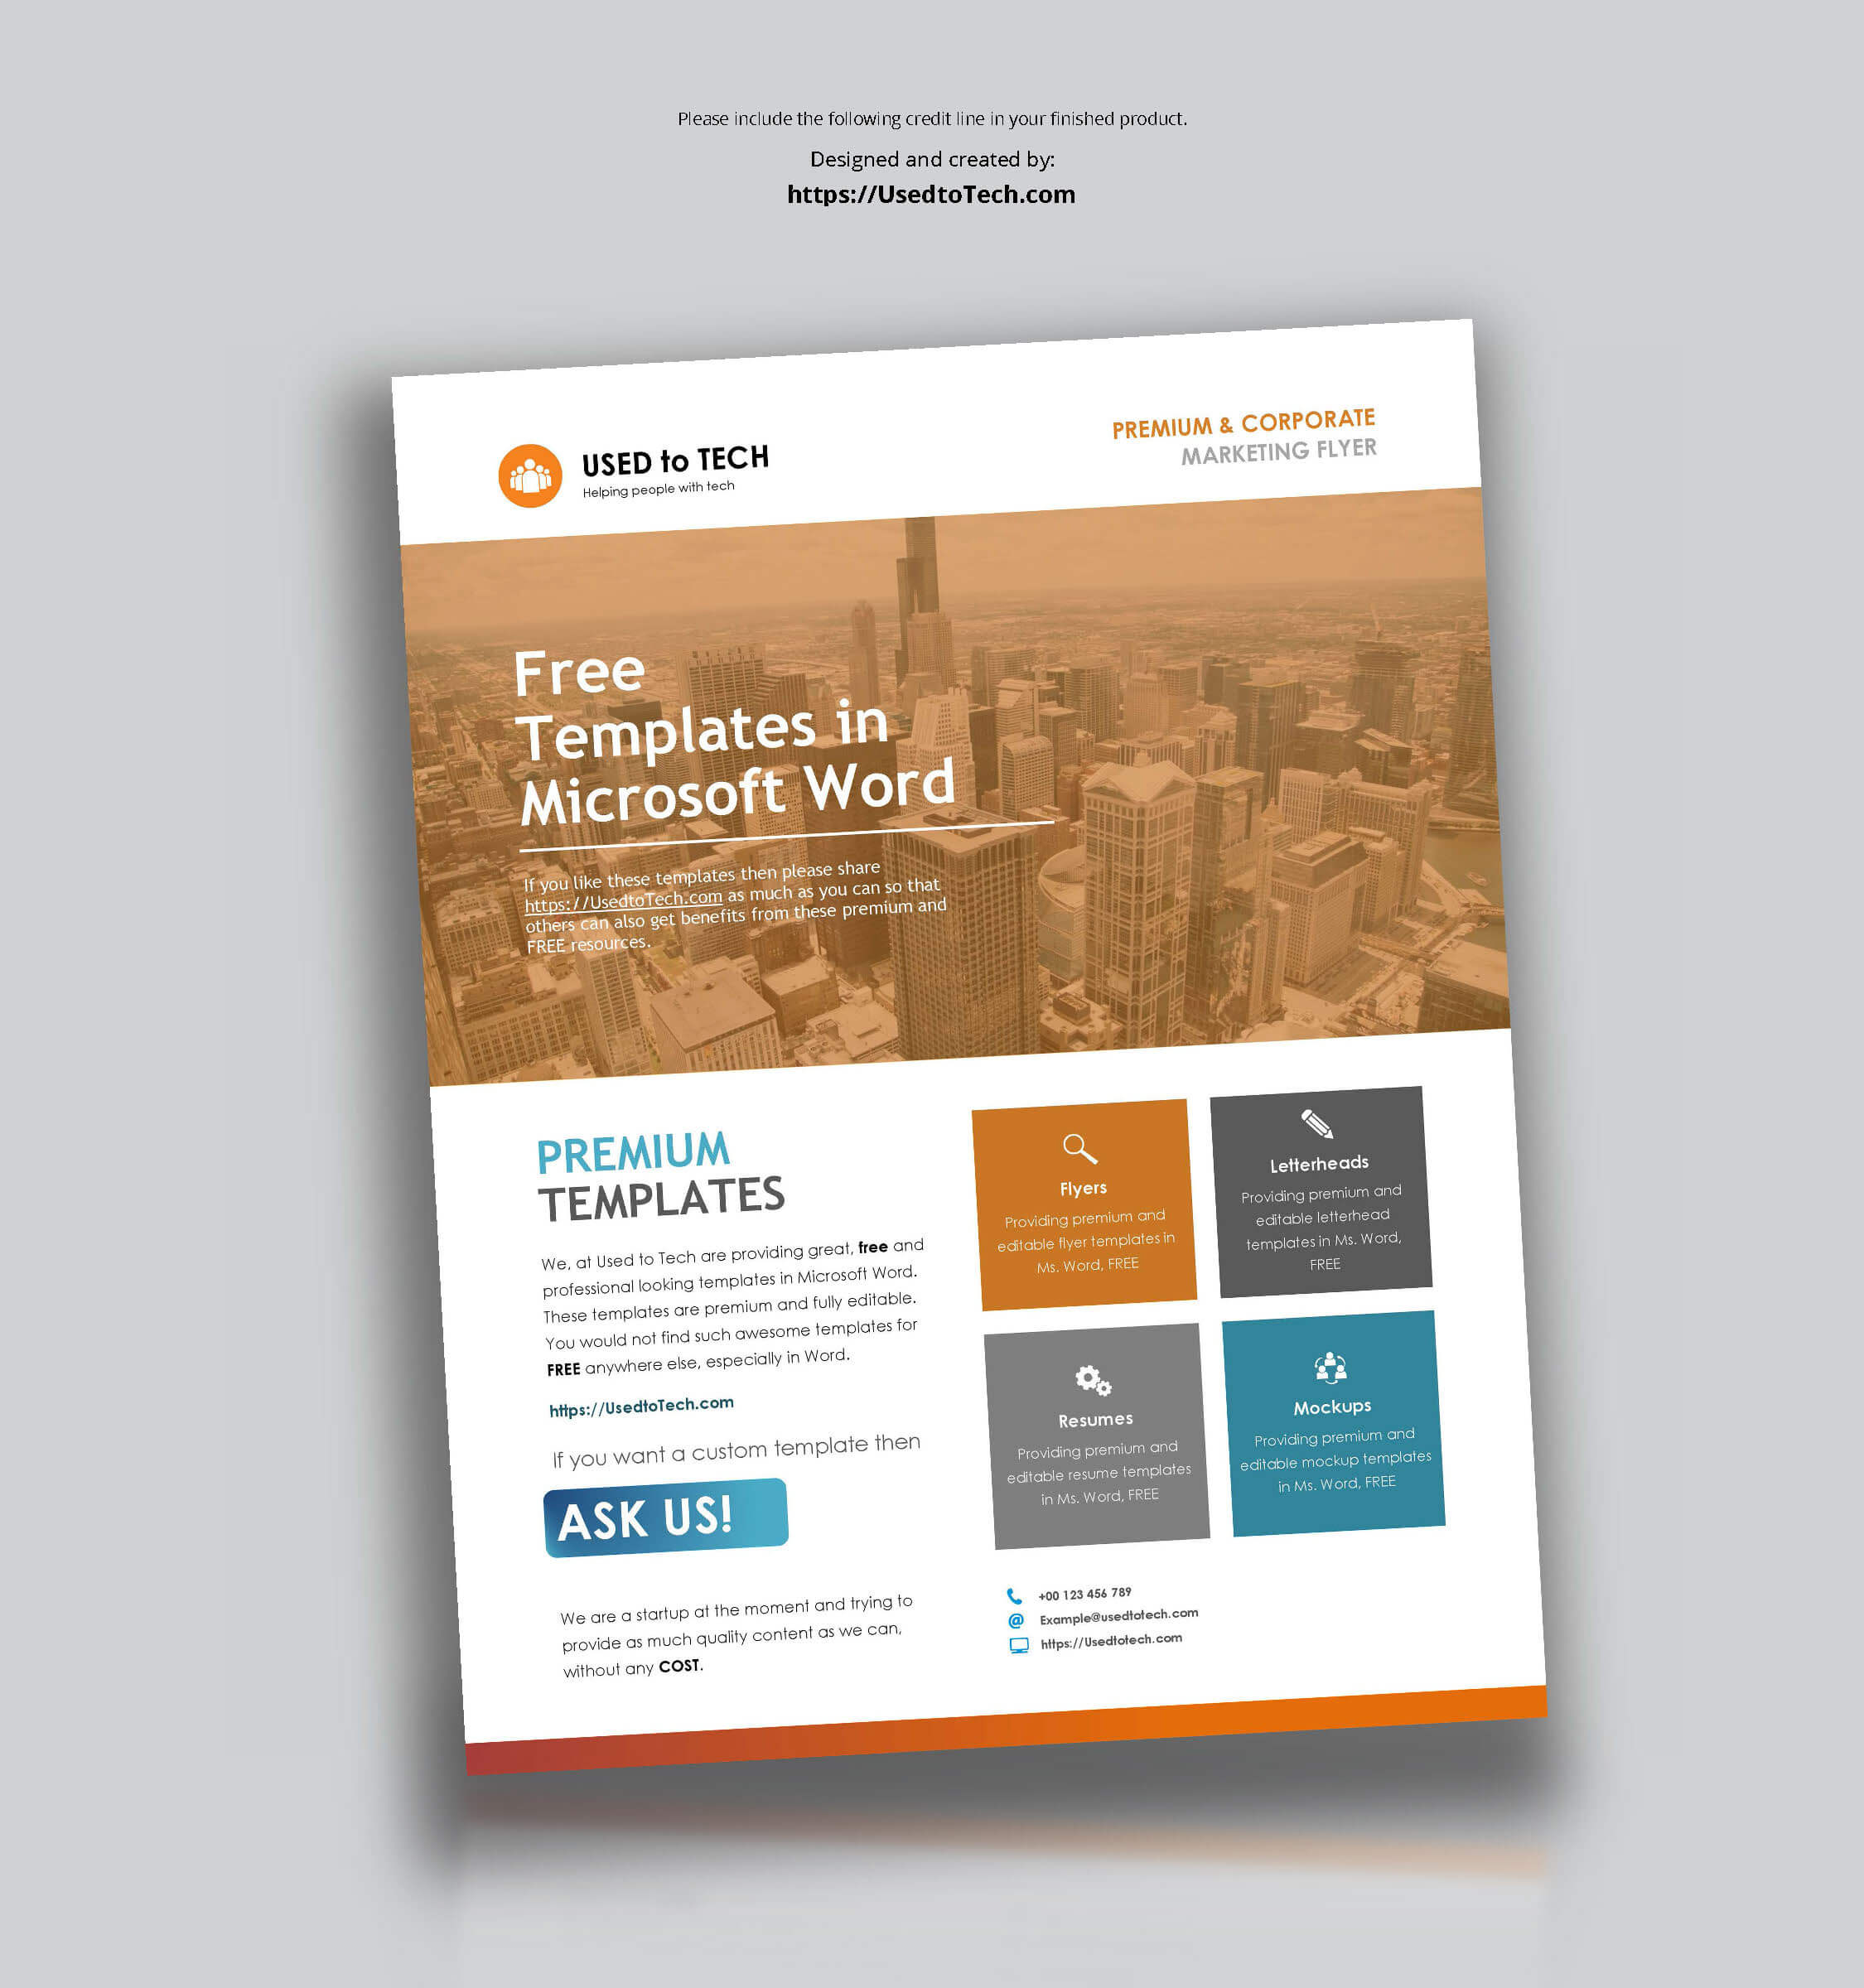 Corporate Flyer Design In Microsoft Word Free - Used To Tech Intended For Templates For Flyers In Word